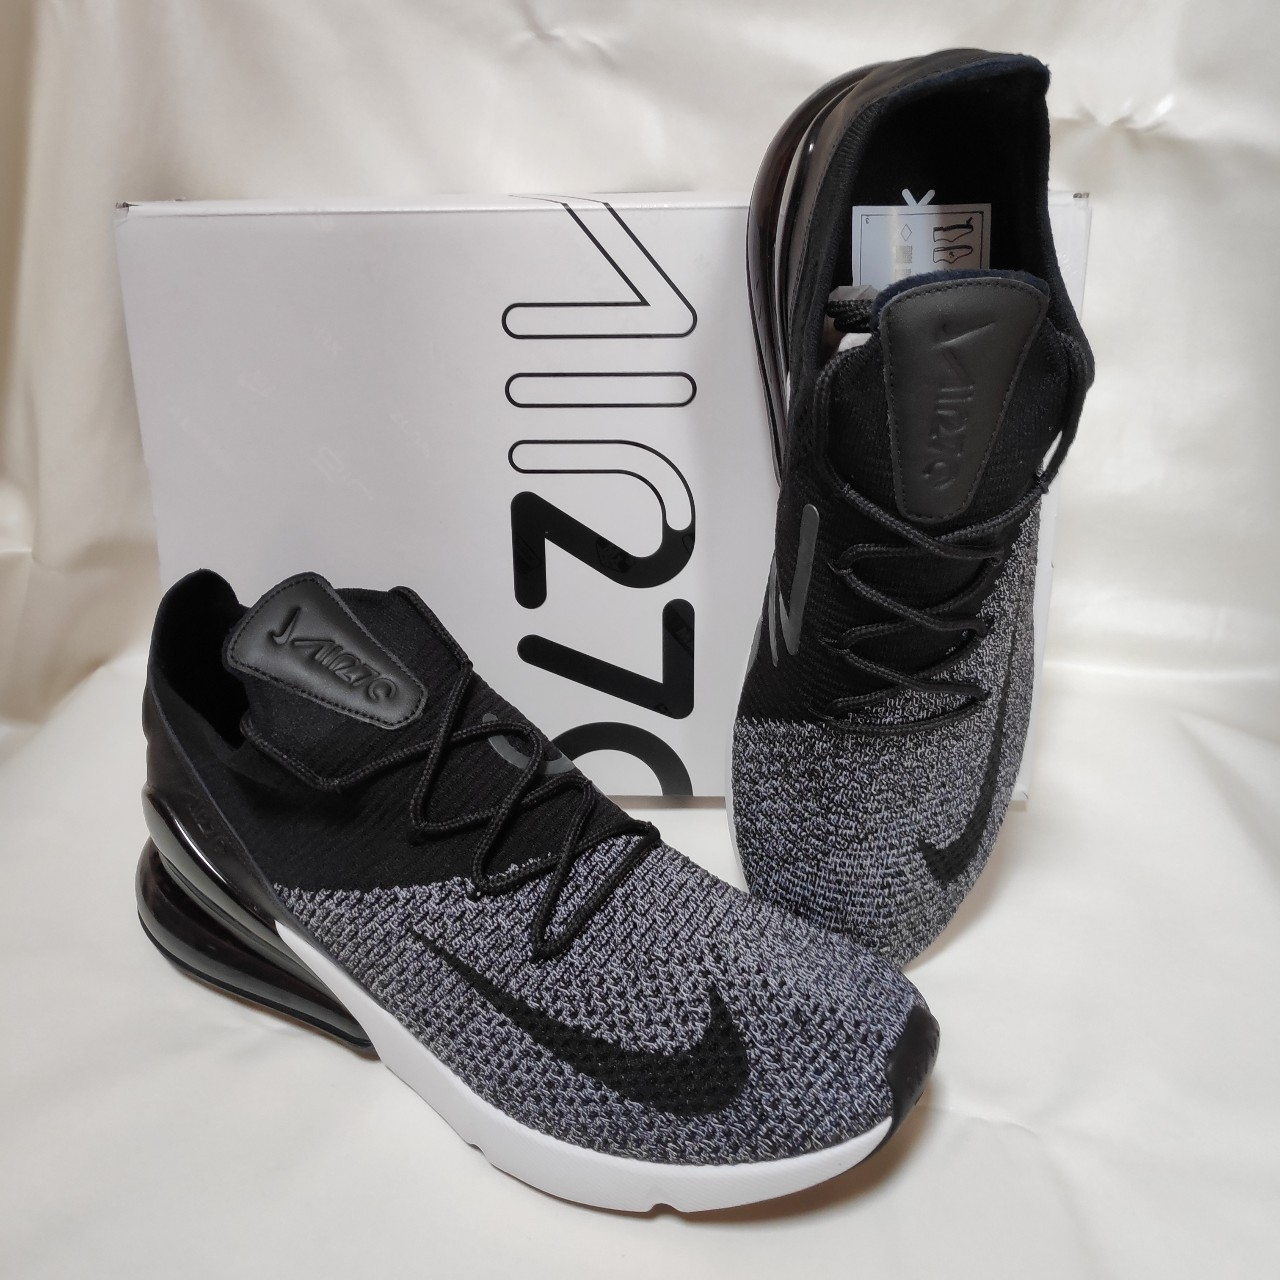 the best attitude 980a5 4776c Nike Air Max 270 Flyknit Oreo New, never worn with... - Depop